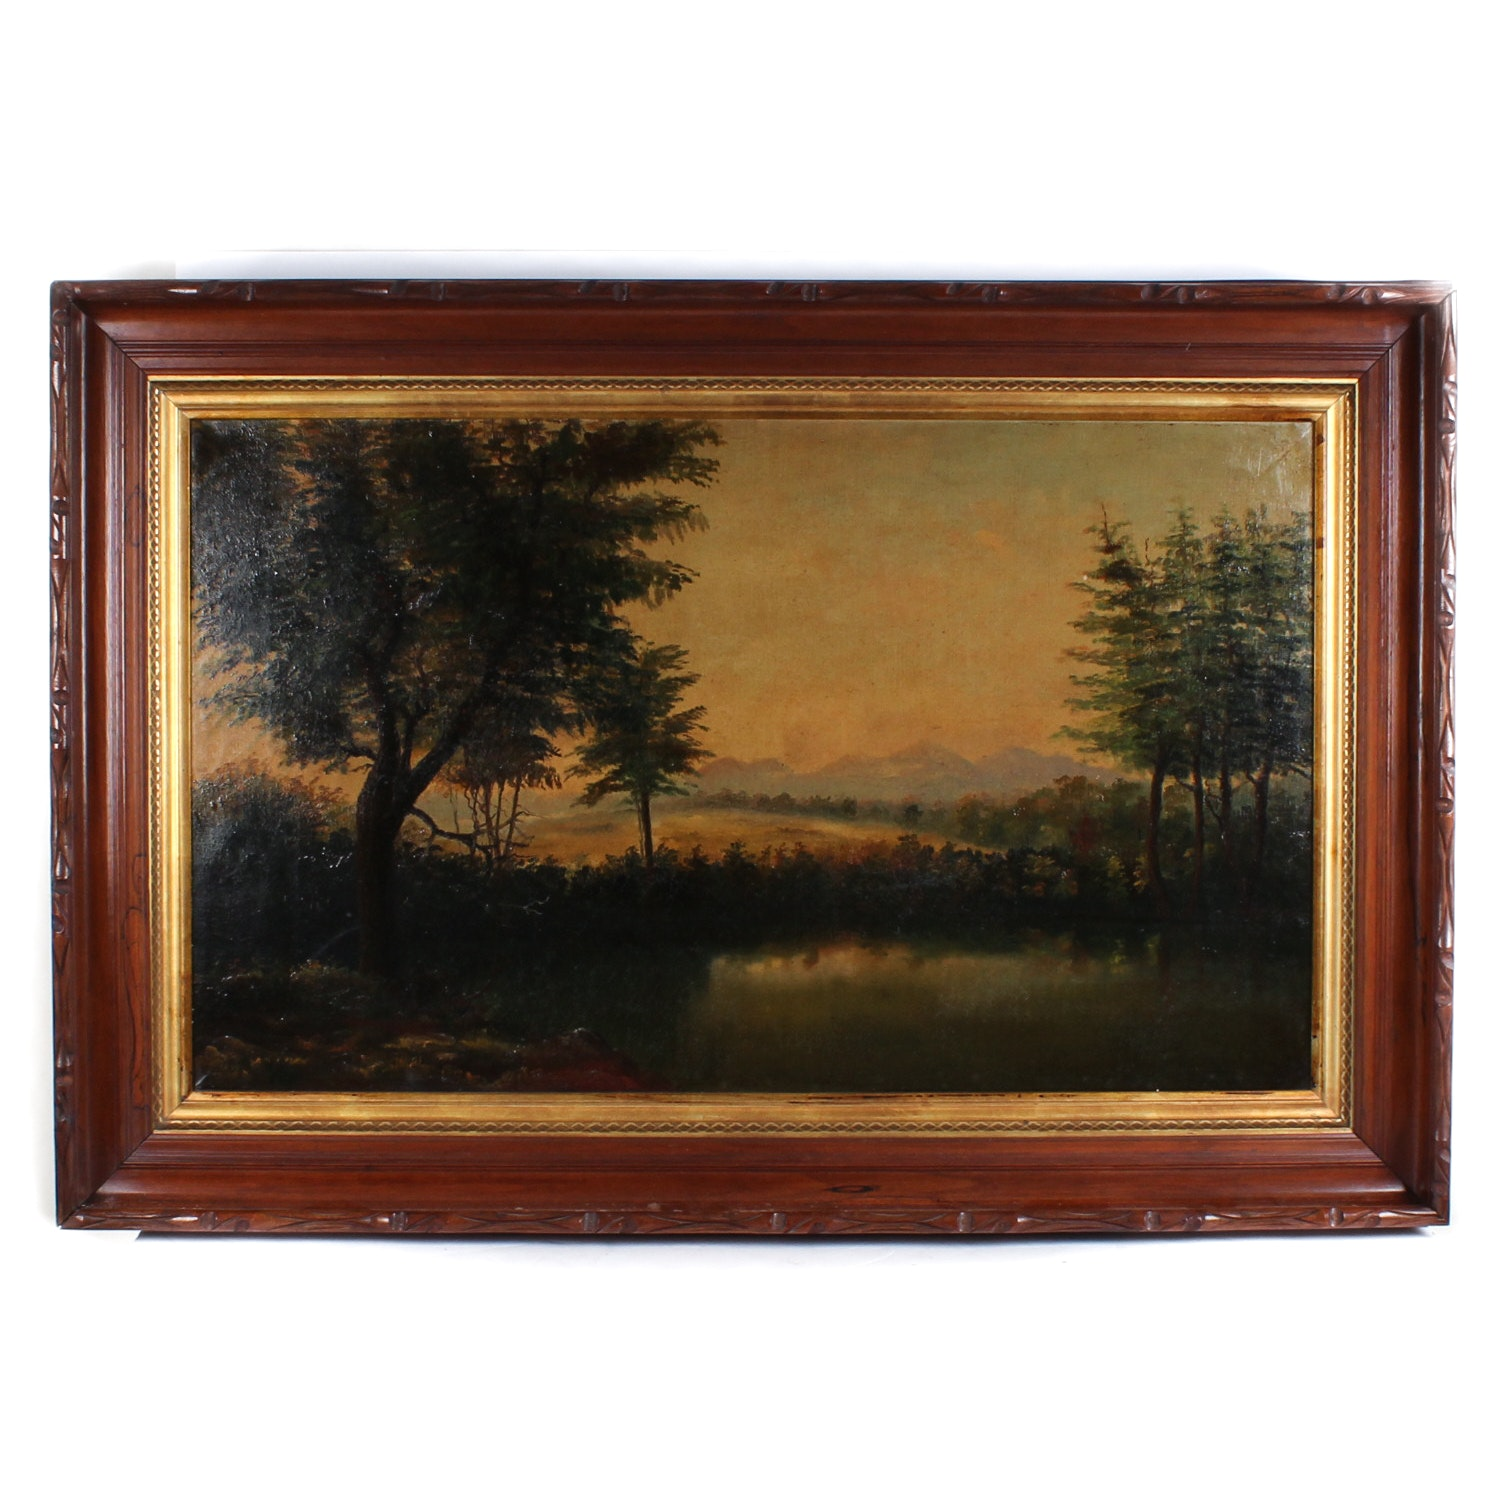 Antique Oil Painting on Canvas Landscape Scene